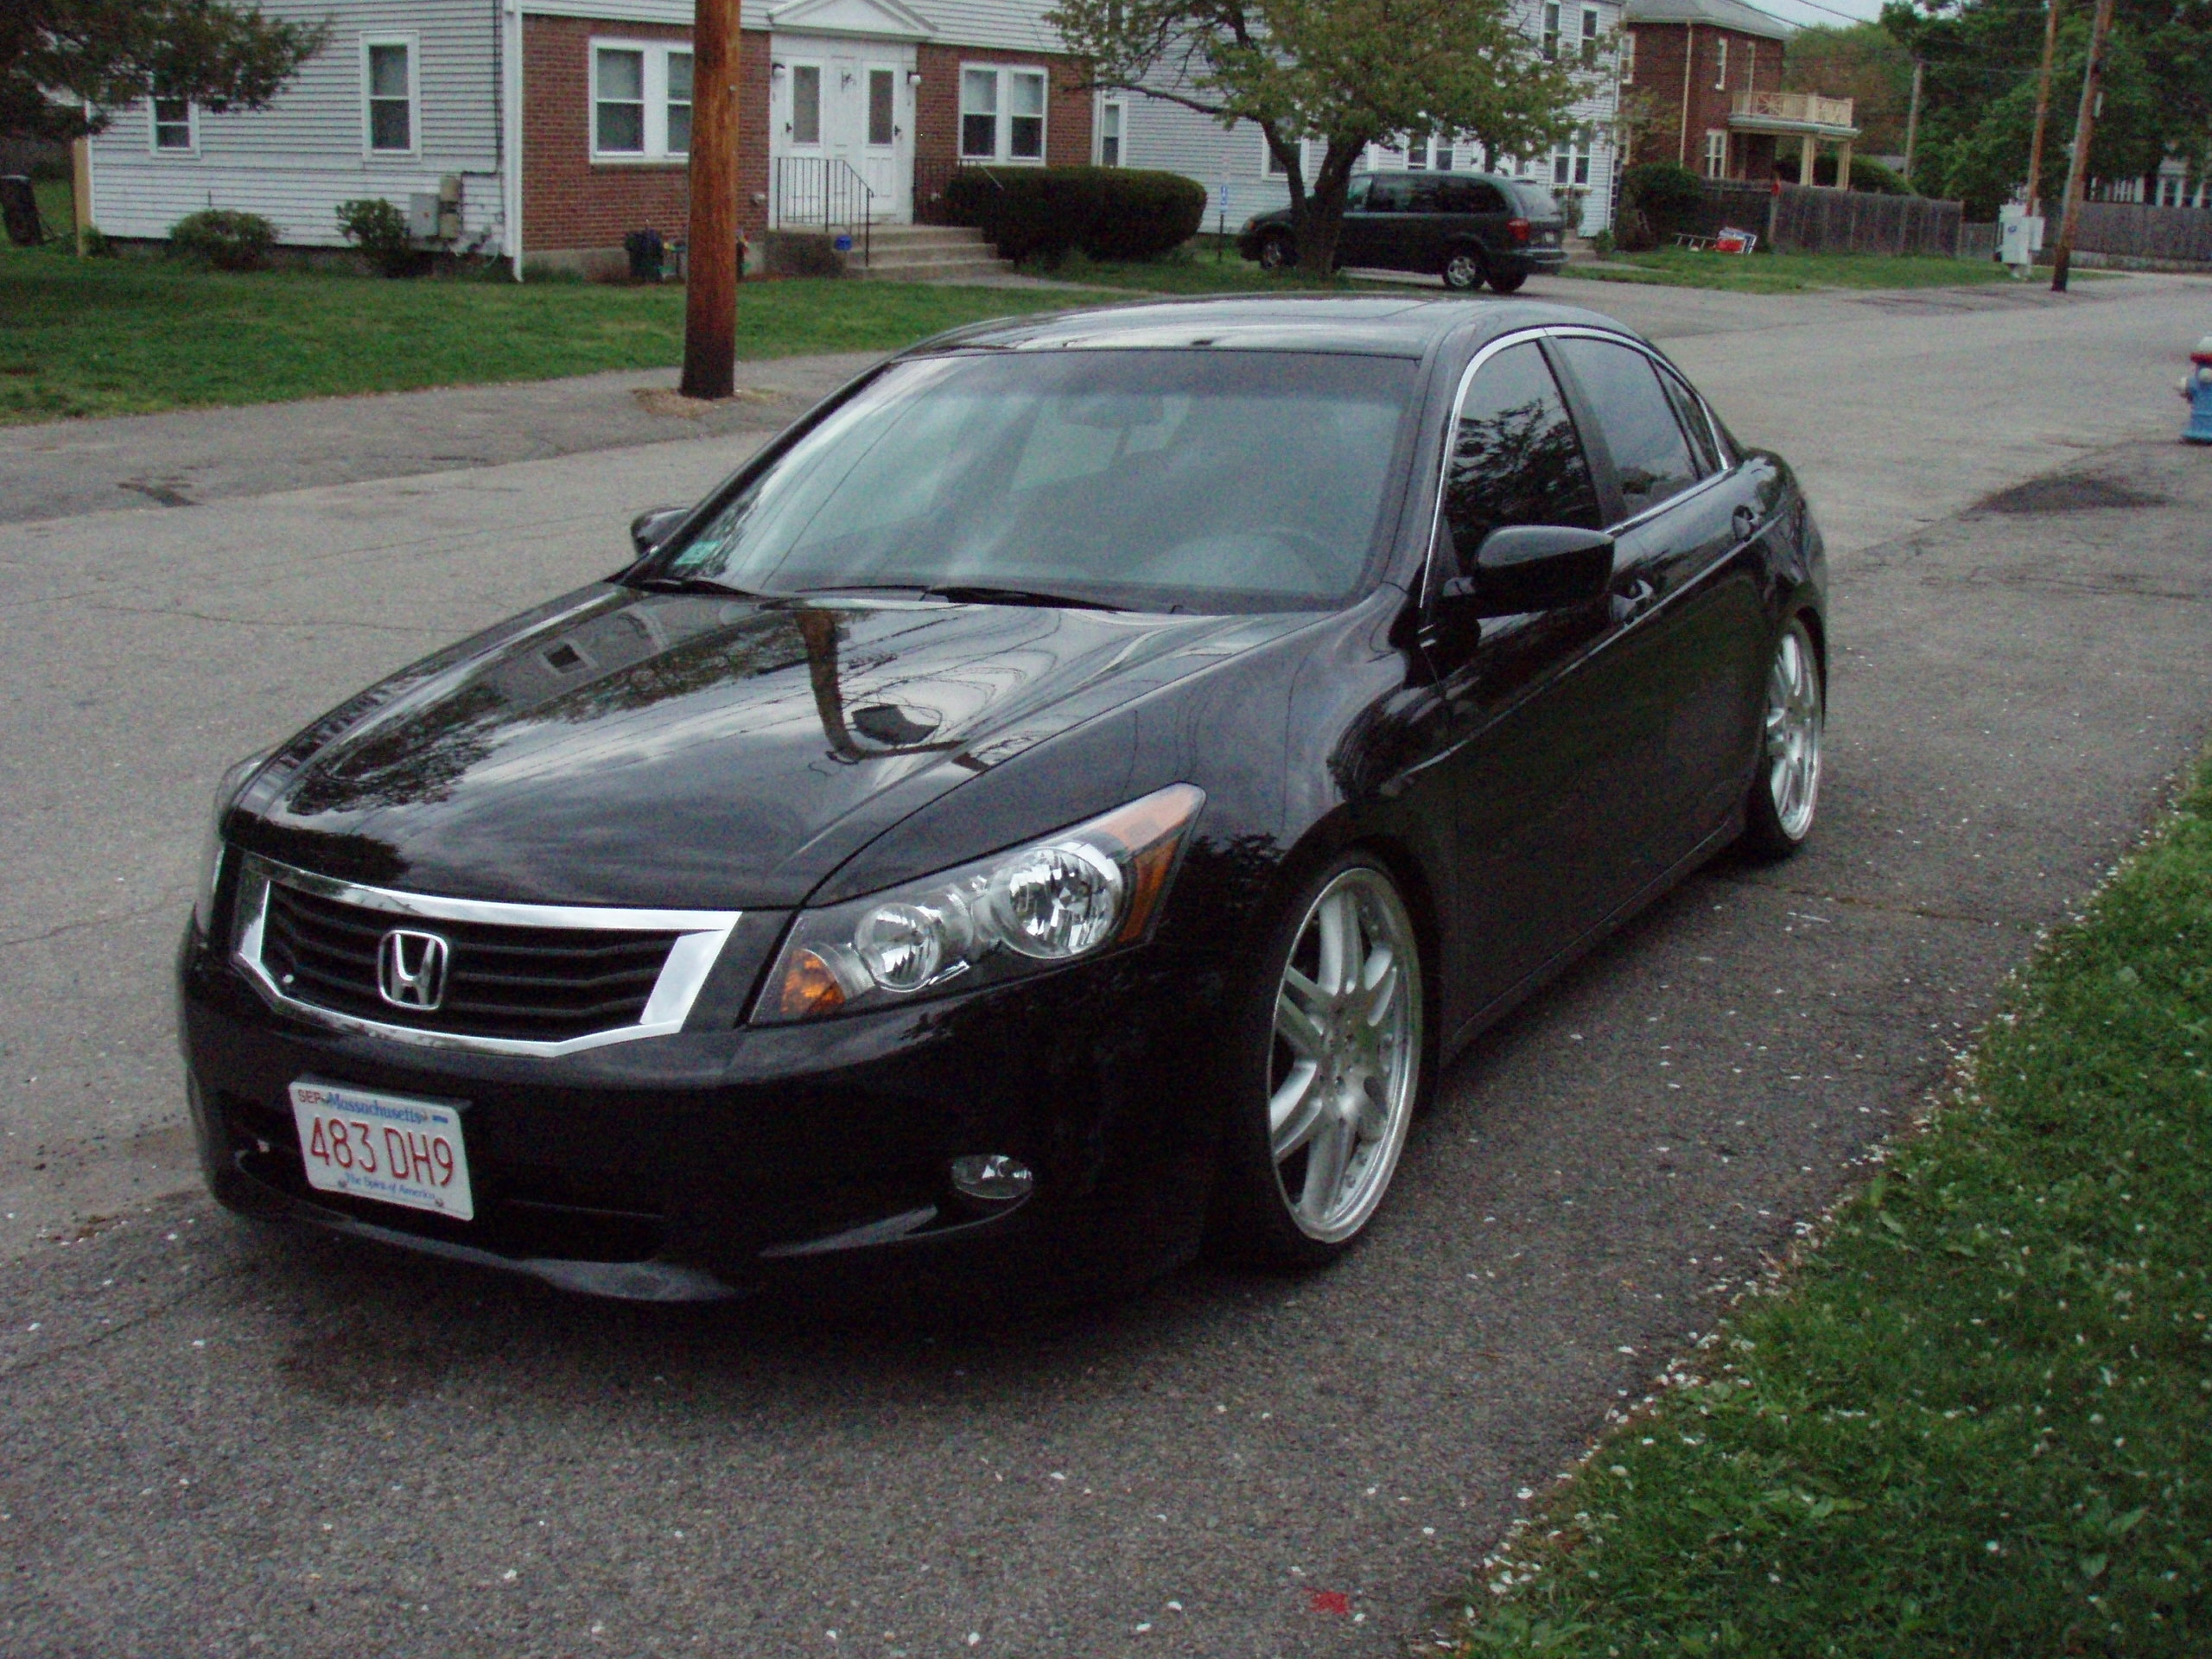 88 black lude 39 s 2009 honda accord lx sedan 4d in la puente ca. Black Bedroom Furniture Sets. Home Design Ideas